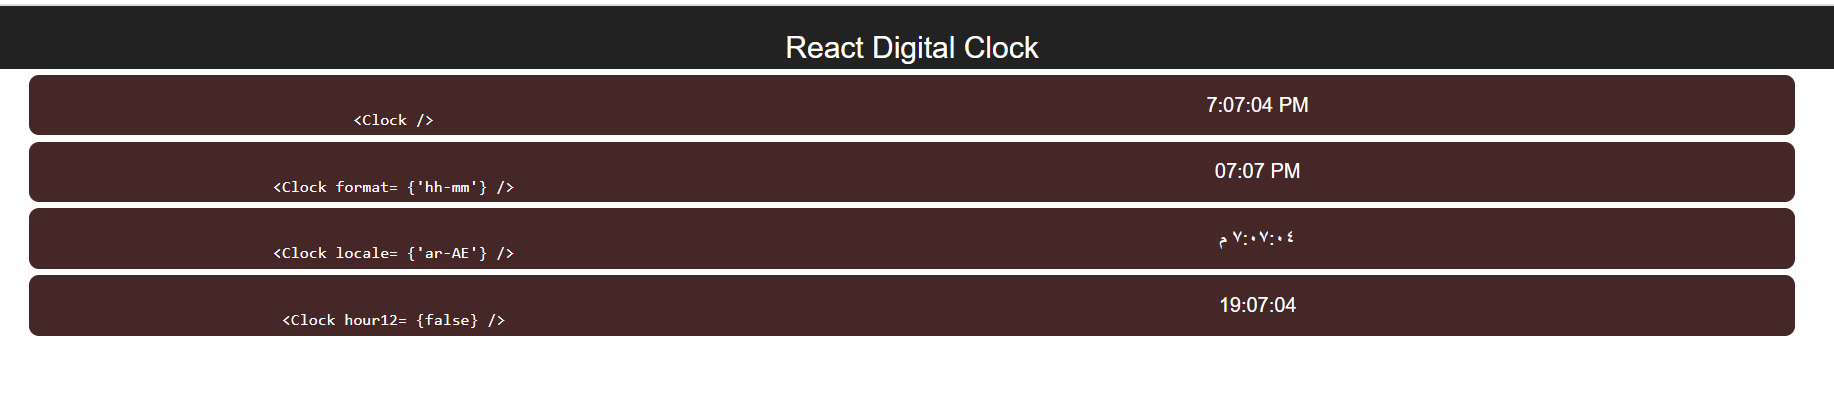 React.js react-digital-clock Library Example to Build a Countdown Digital Alarm Blinking Clock in Browser Using Javascript Full Project For Beginners